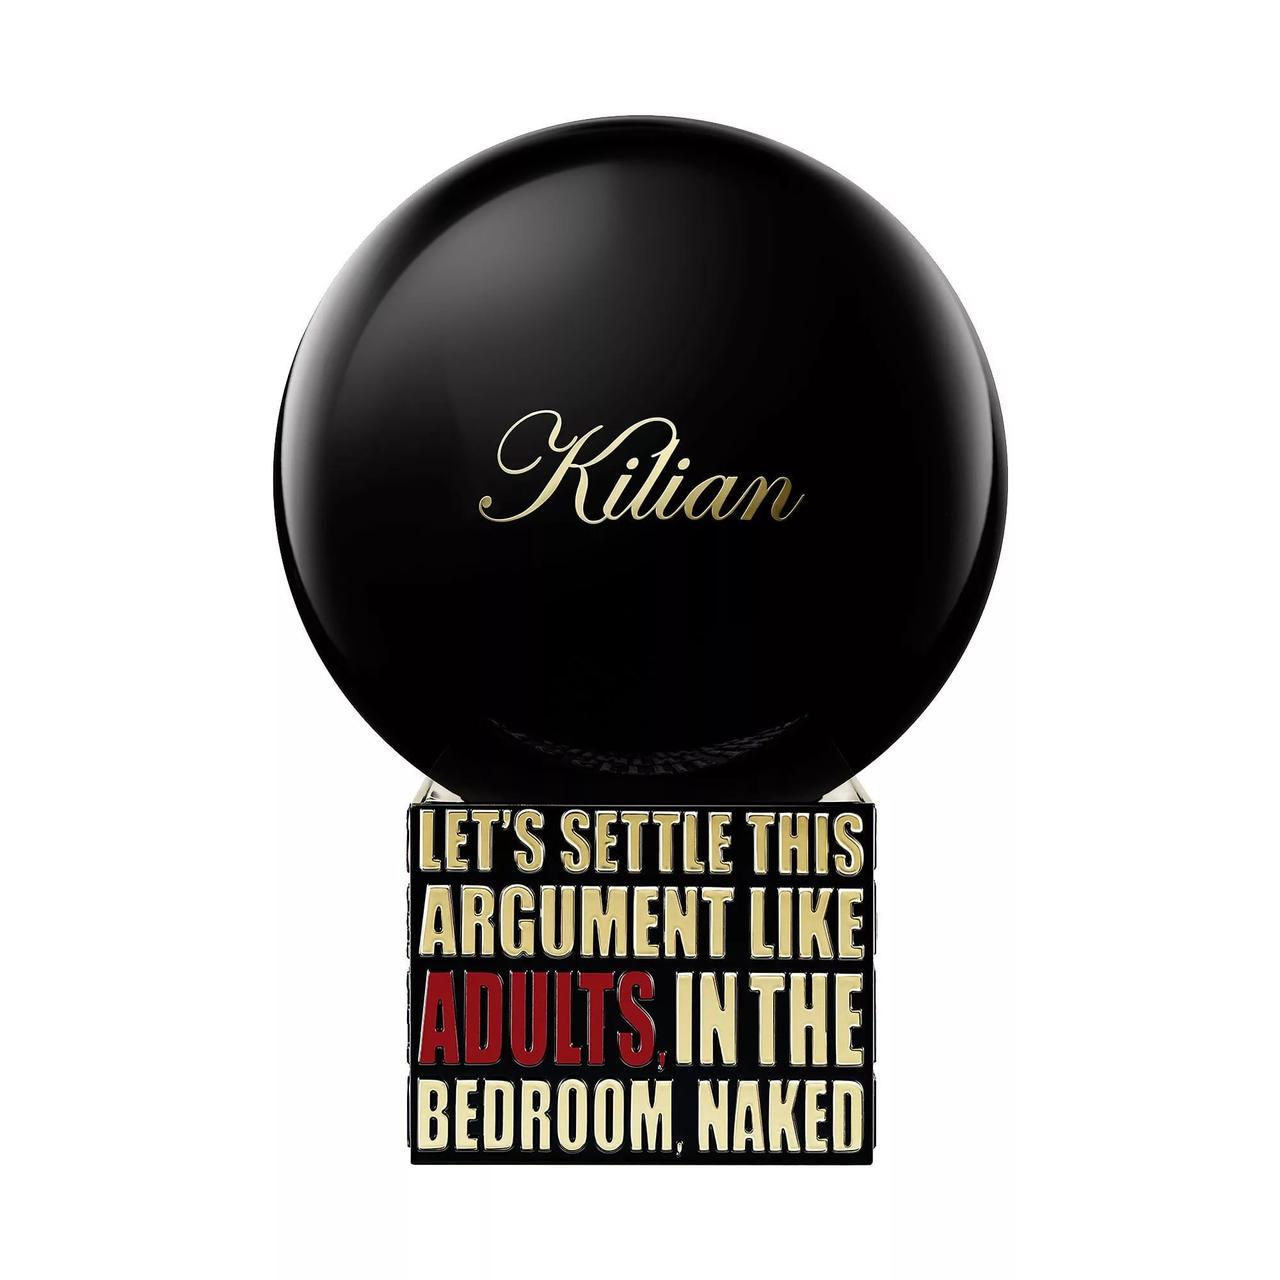 LET'S SETTLE THIS ARGUMENT LIKE ADULTS ,IN THE BEDROM,NAKED by Kilian100ml Original